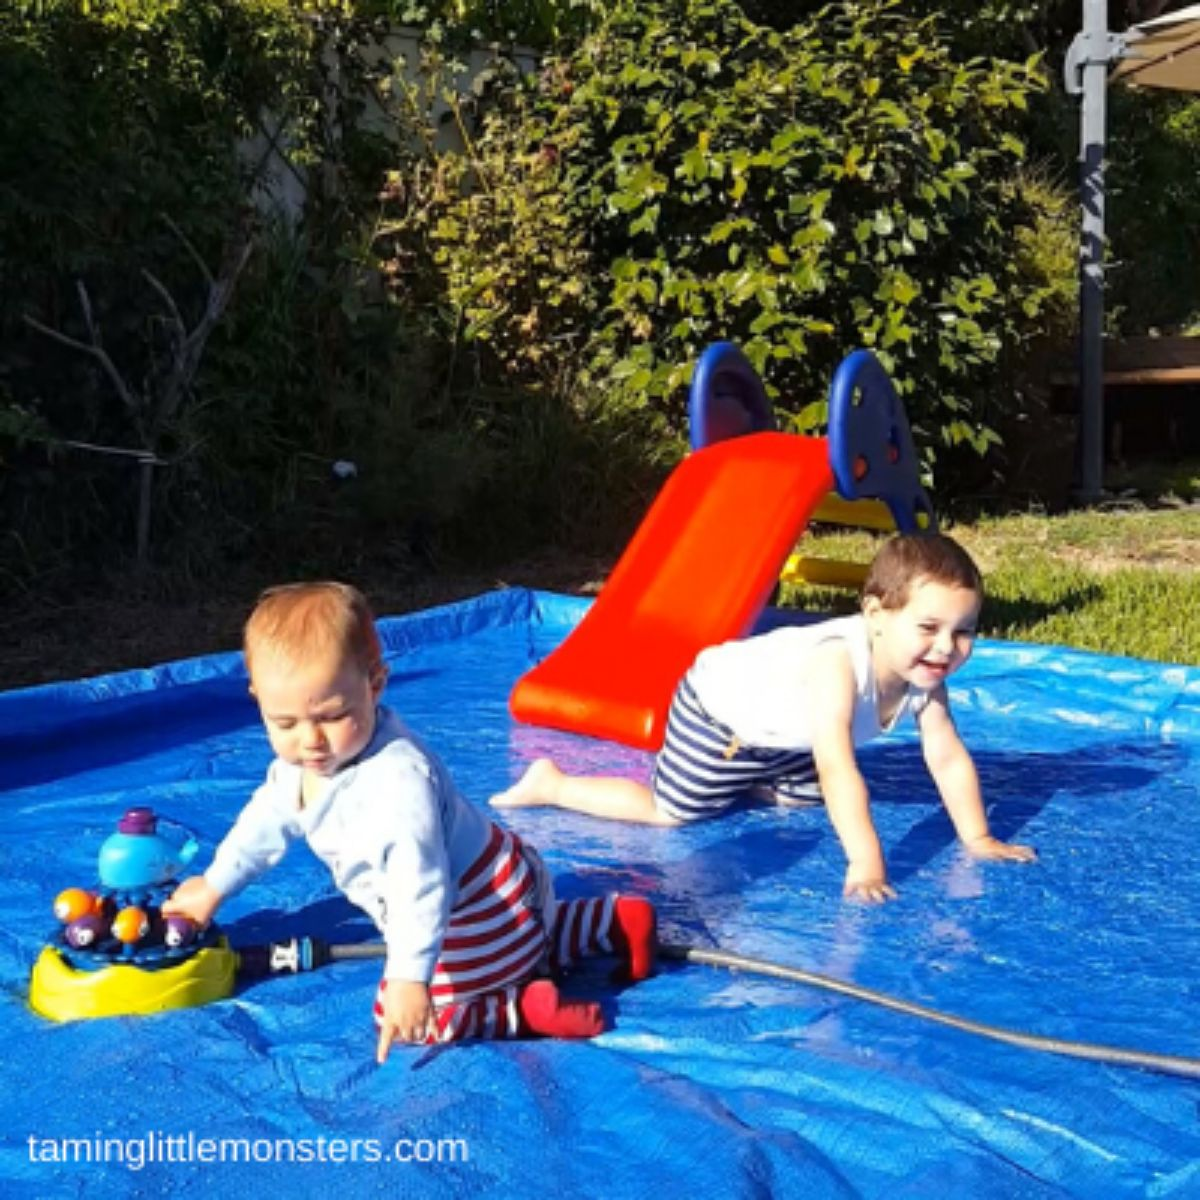 2 toddlers play on some blue plastic filled with water from a hose. There is a red slide into the water